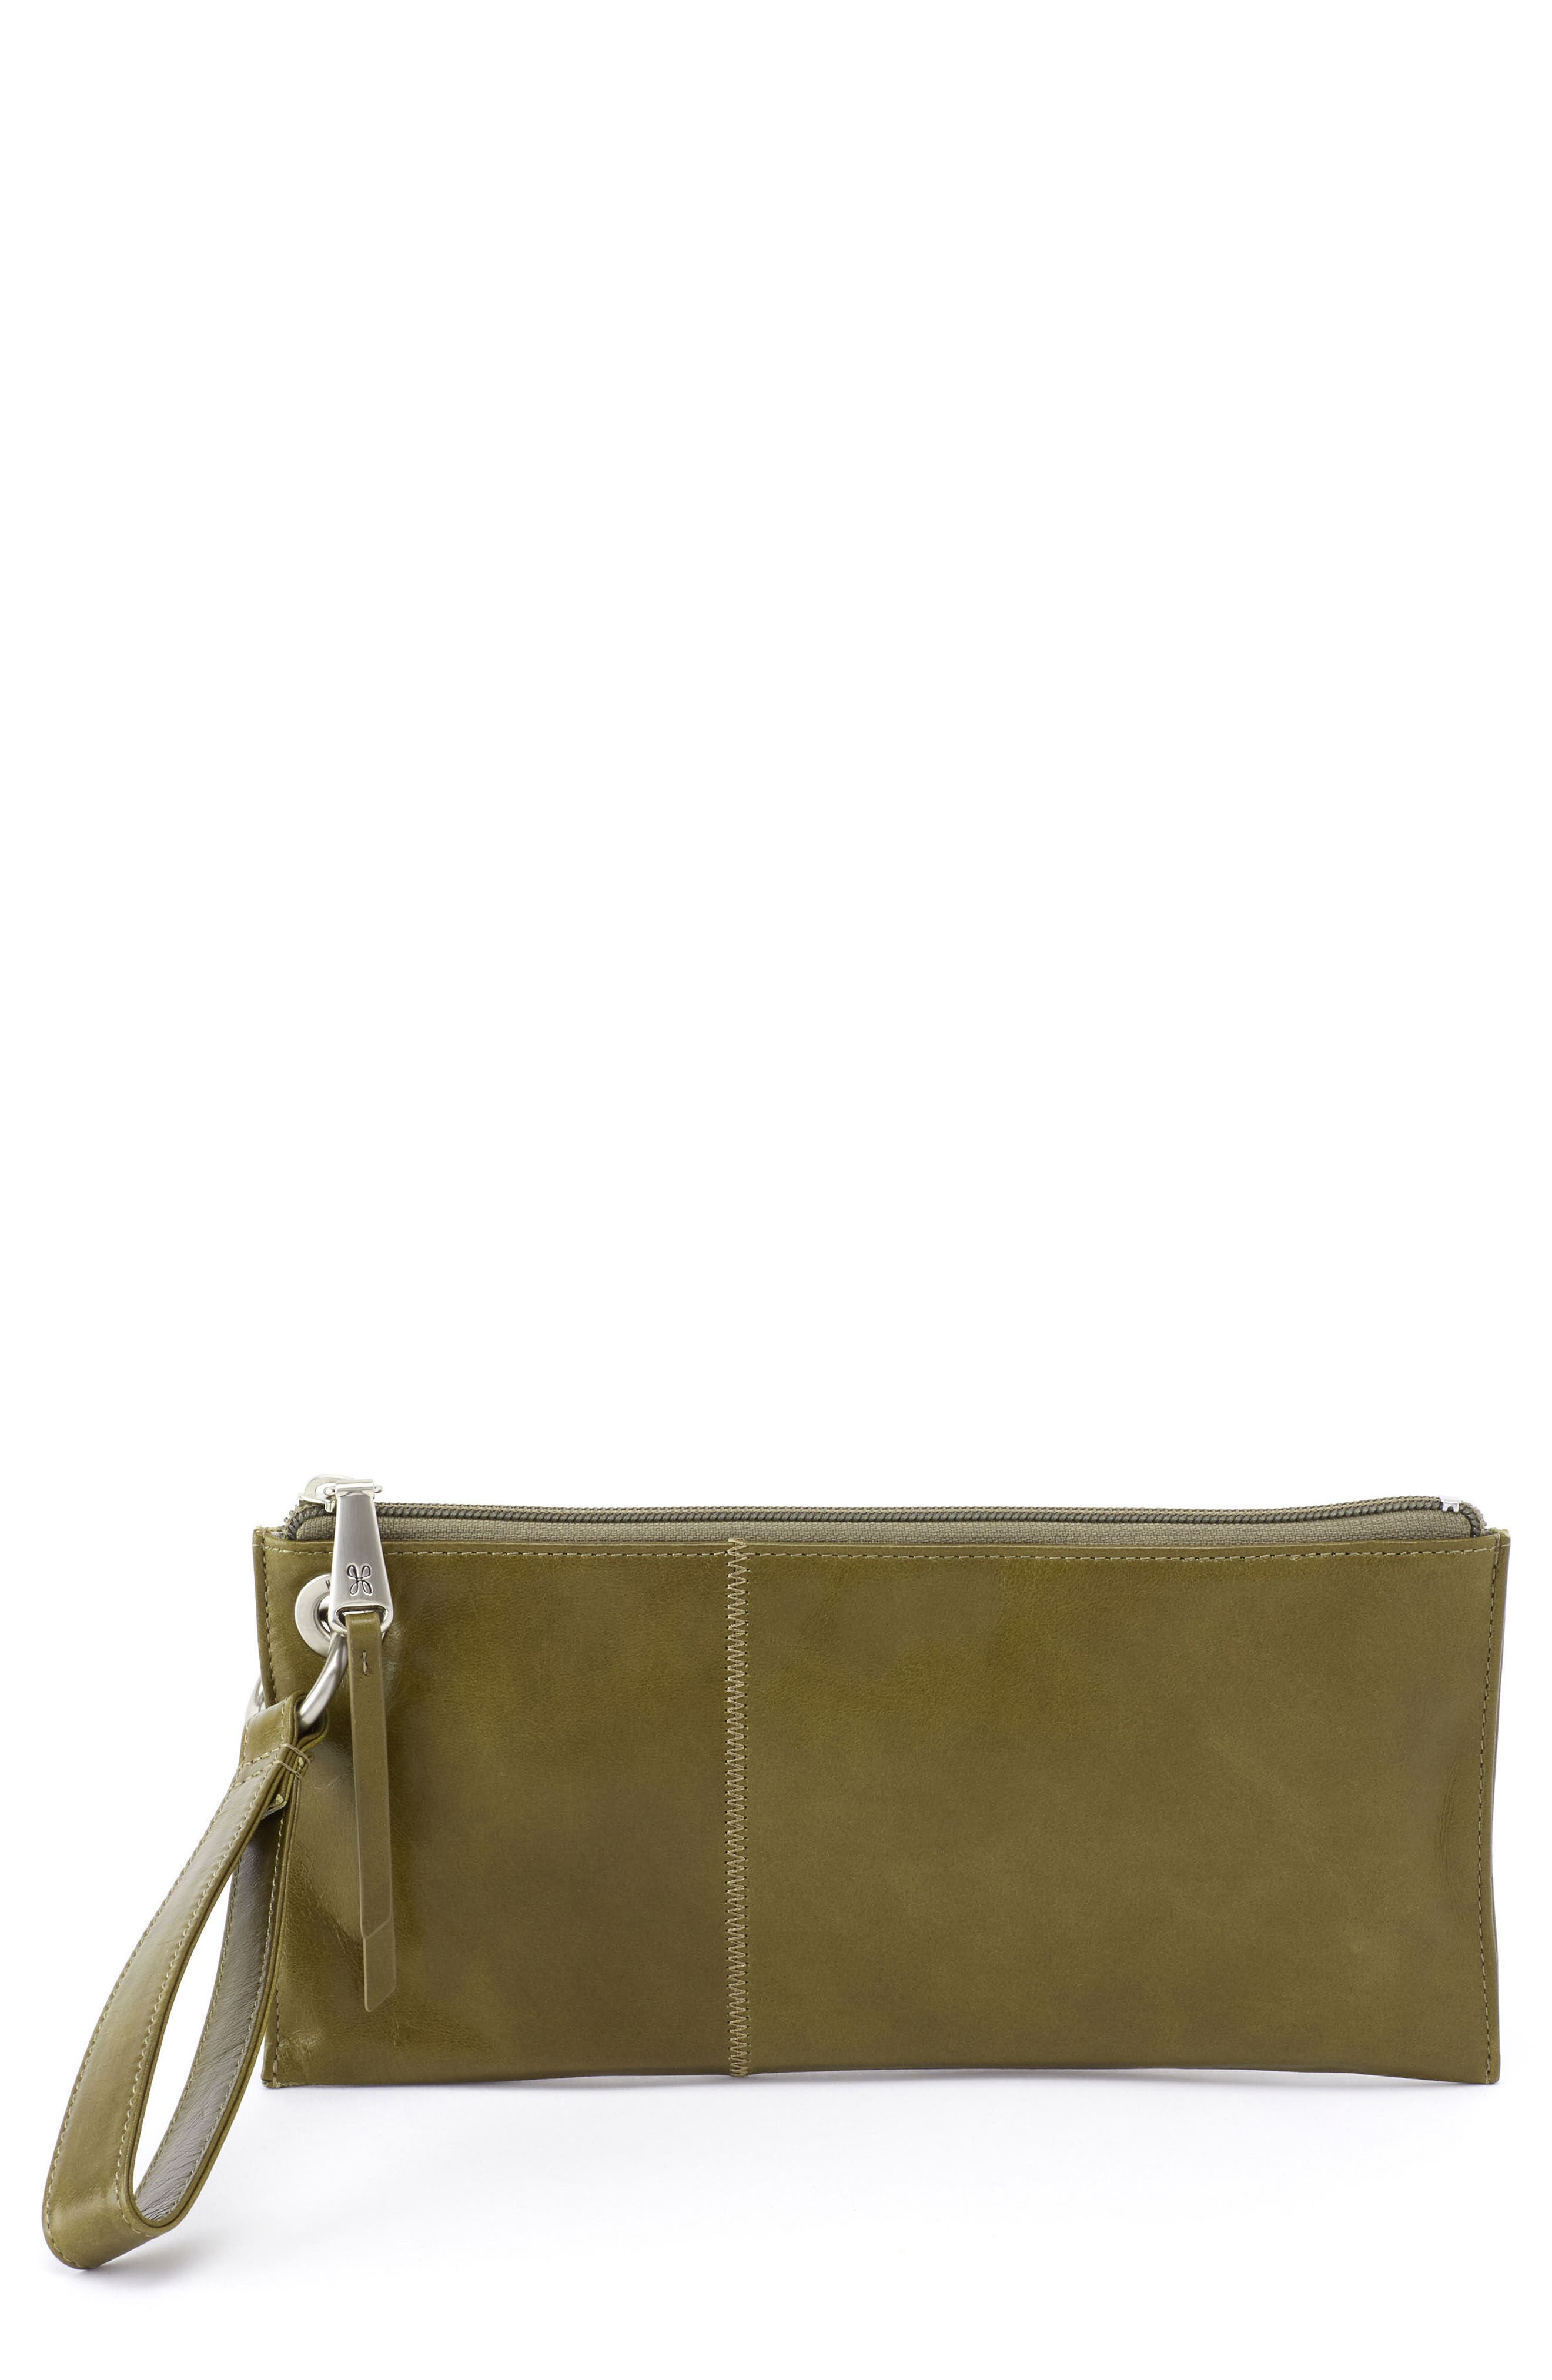 VIDA Leather Statement Clutch - Day Break by VIDA